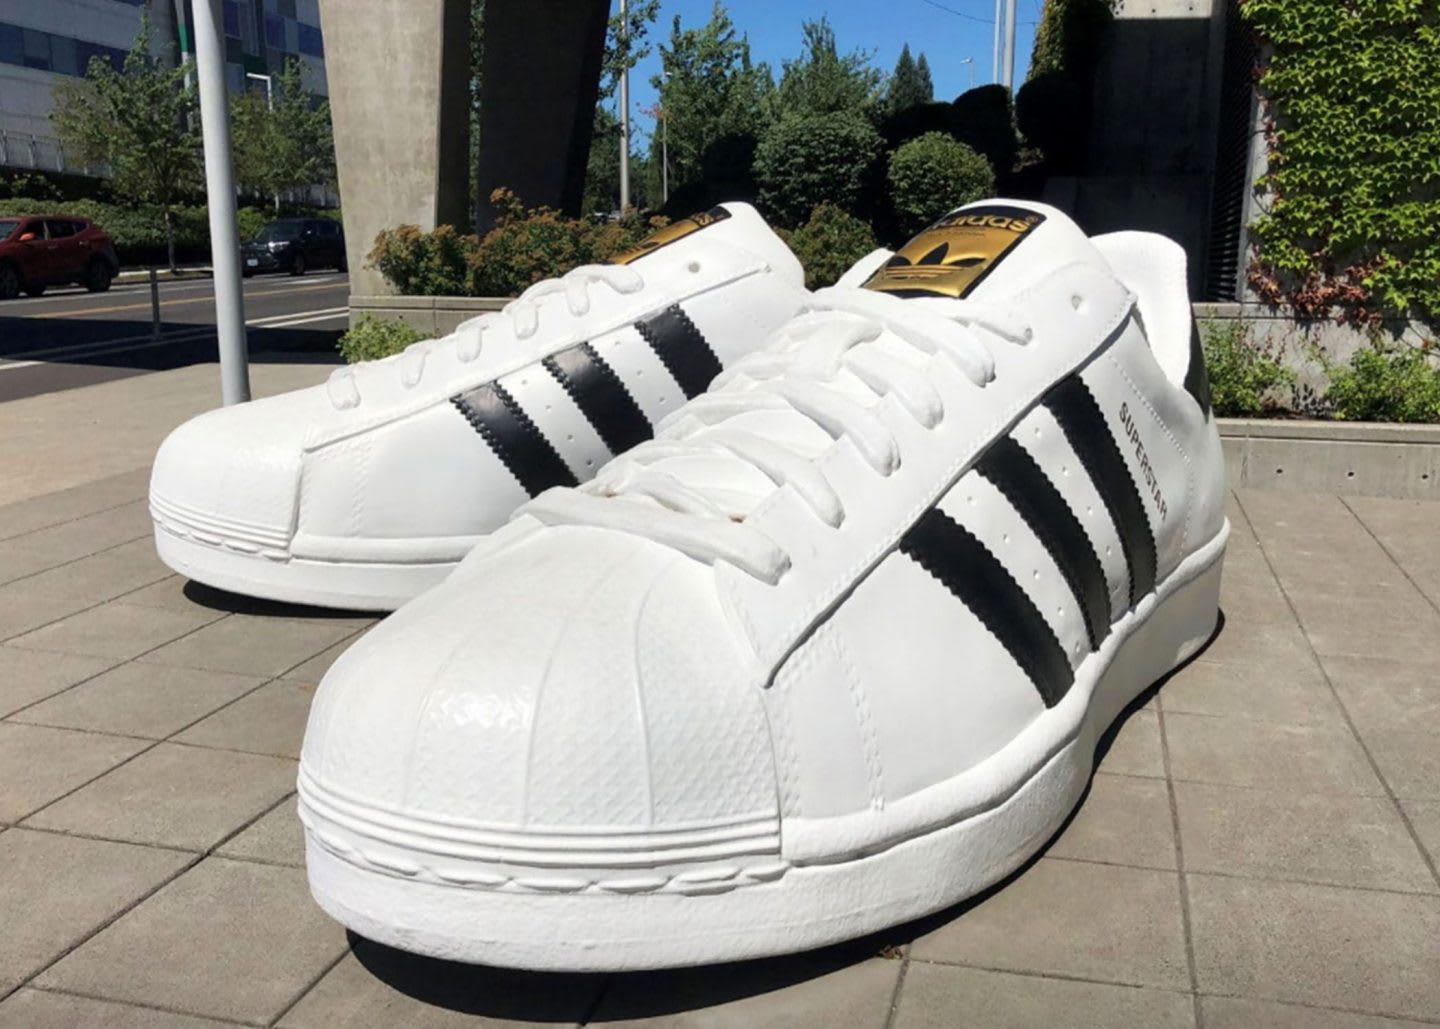 A pair of giant adidas Superstar sneakers standing on the ground in front of the adidas offices in Portland, GamePlan A